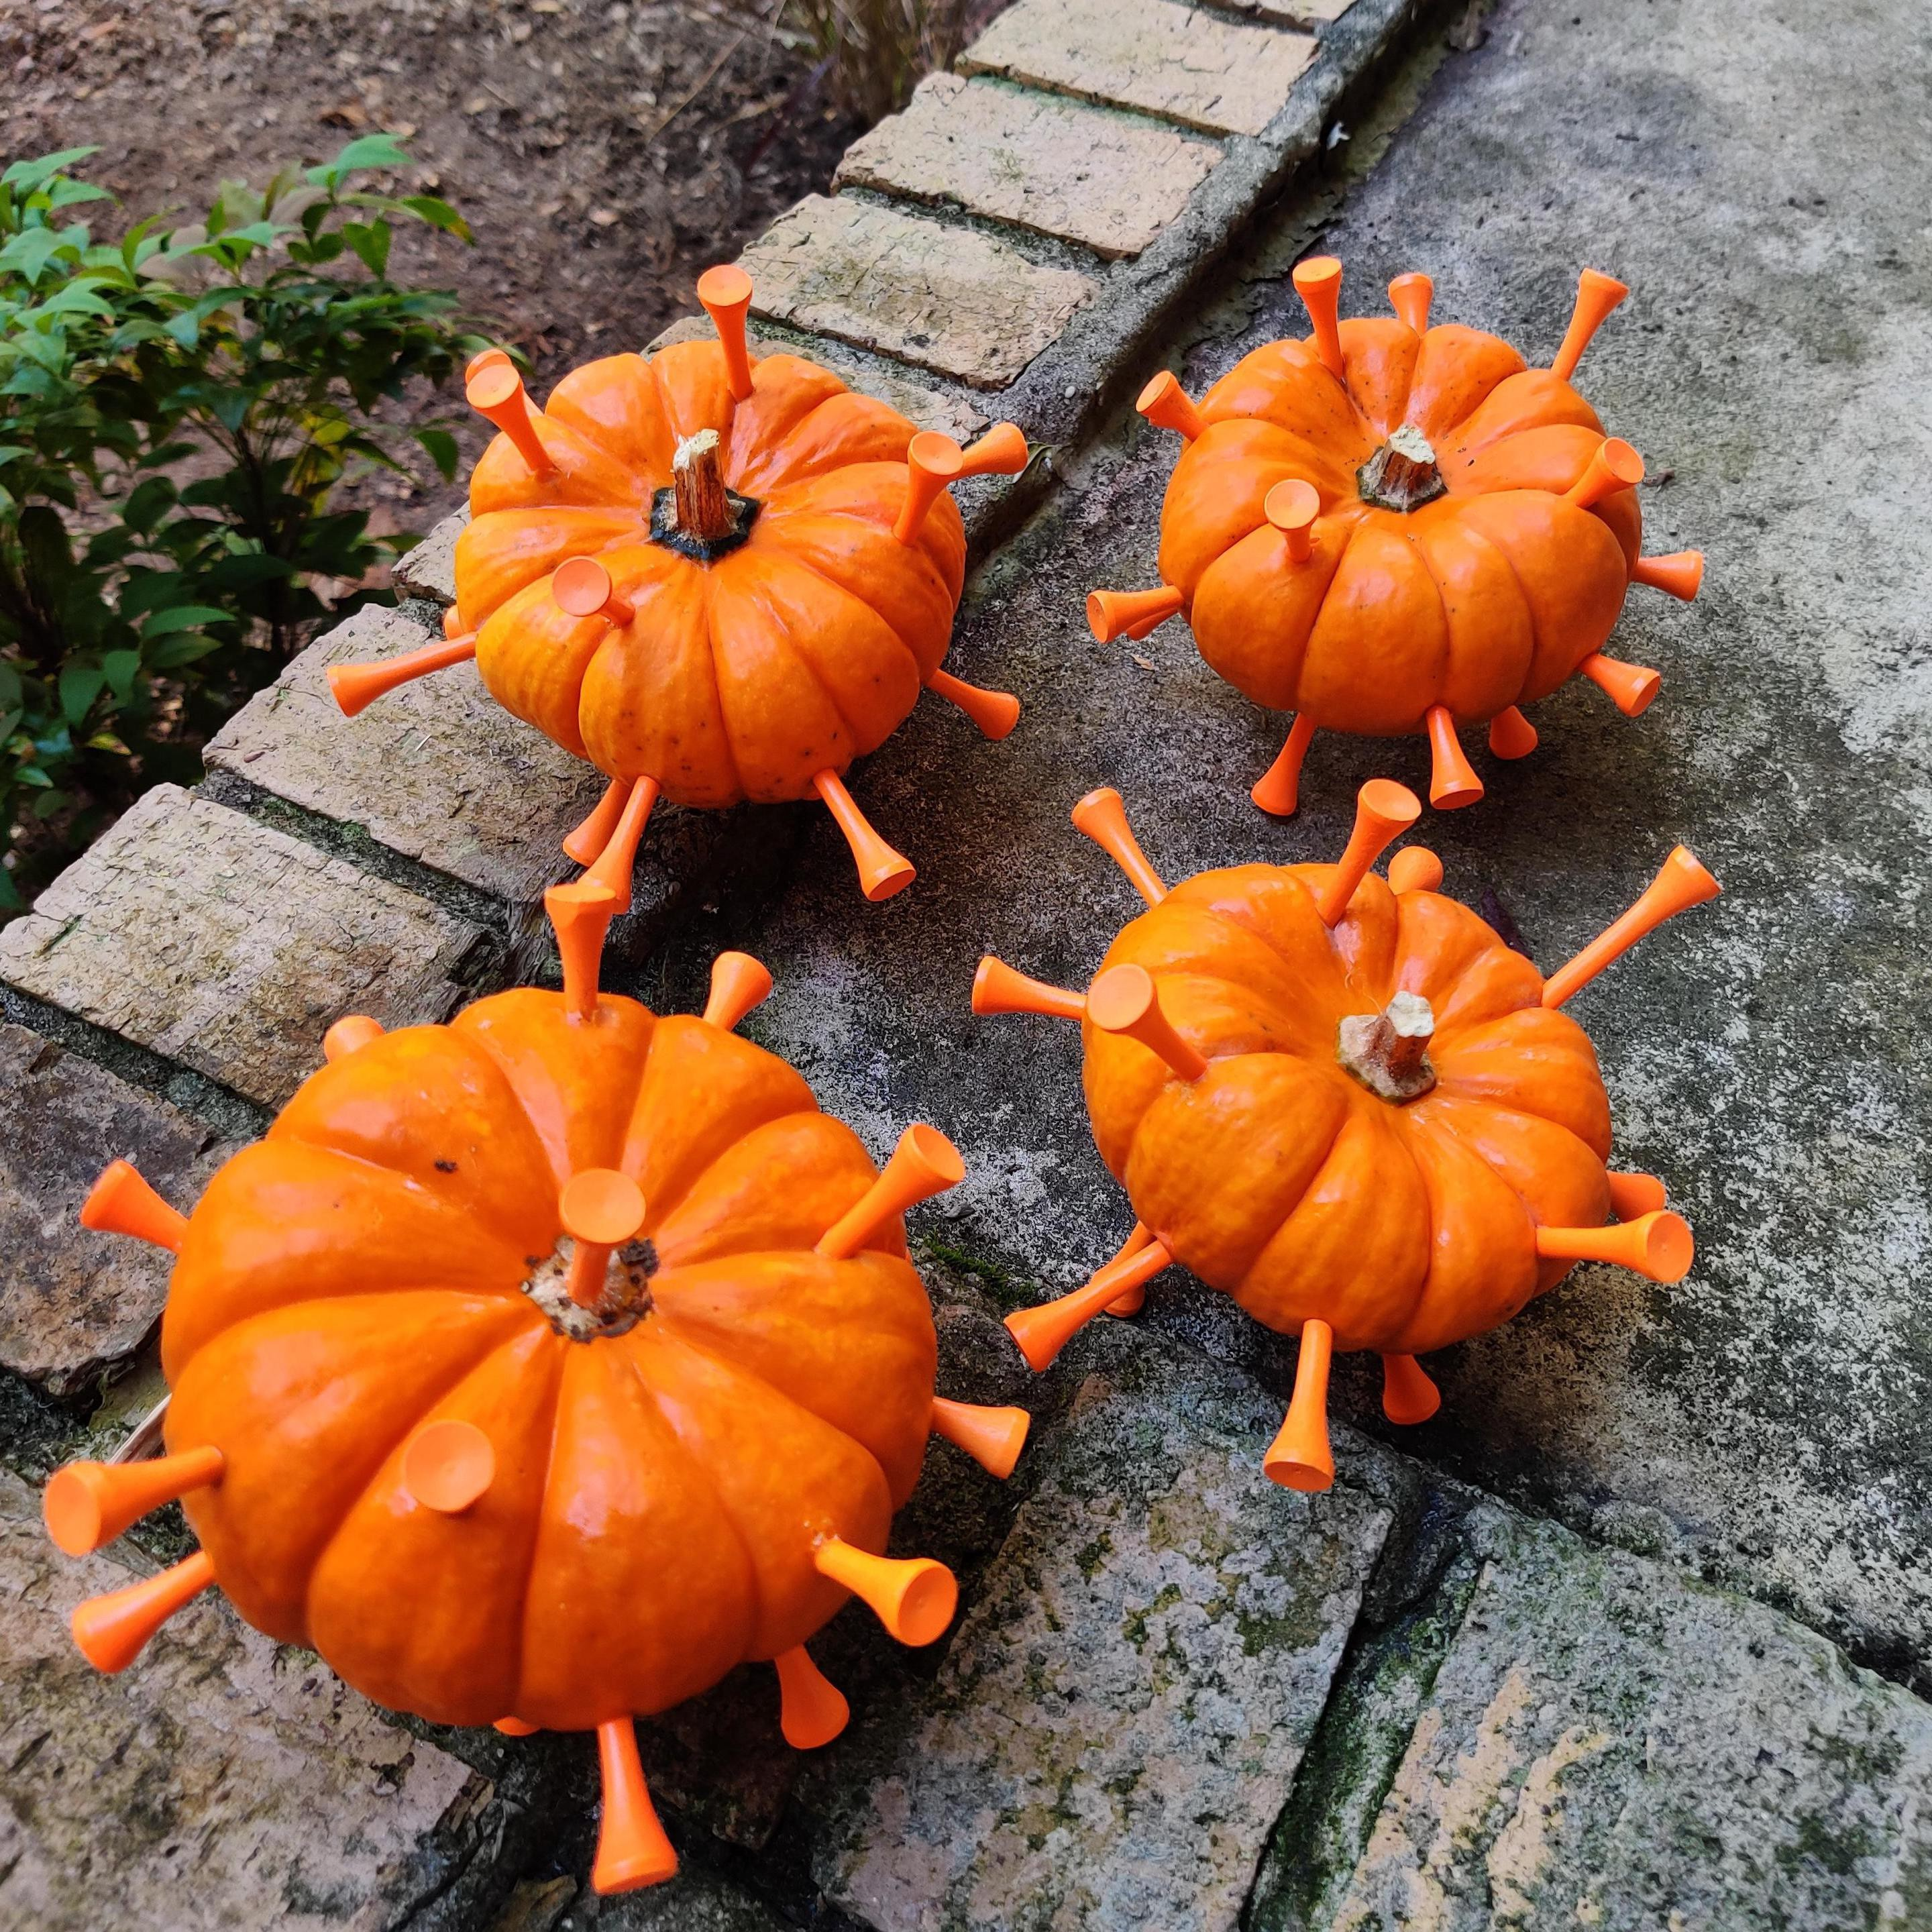 Four baby pumpkins with many matching orange golf tees sticking out of them, made to resemble spiked Coronavirus COVID19.